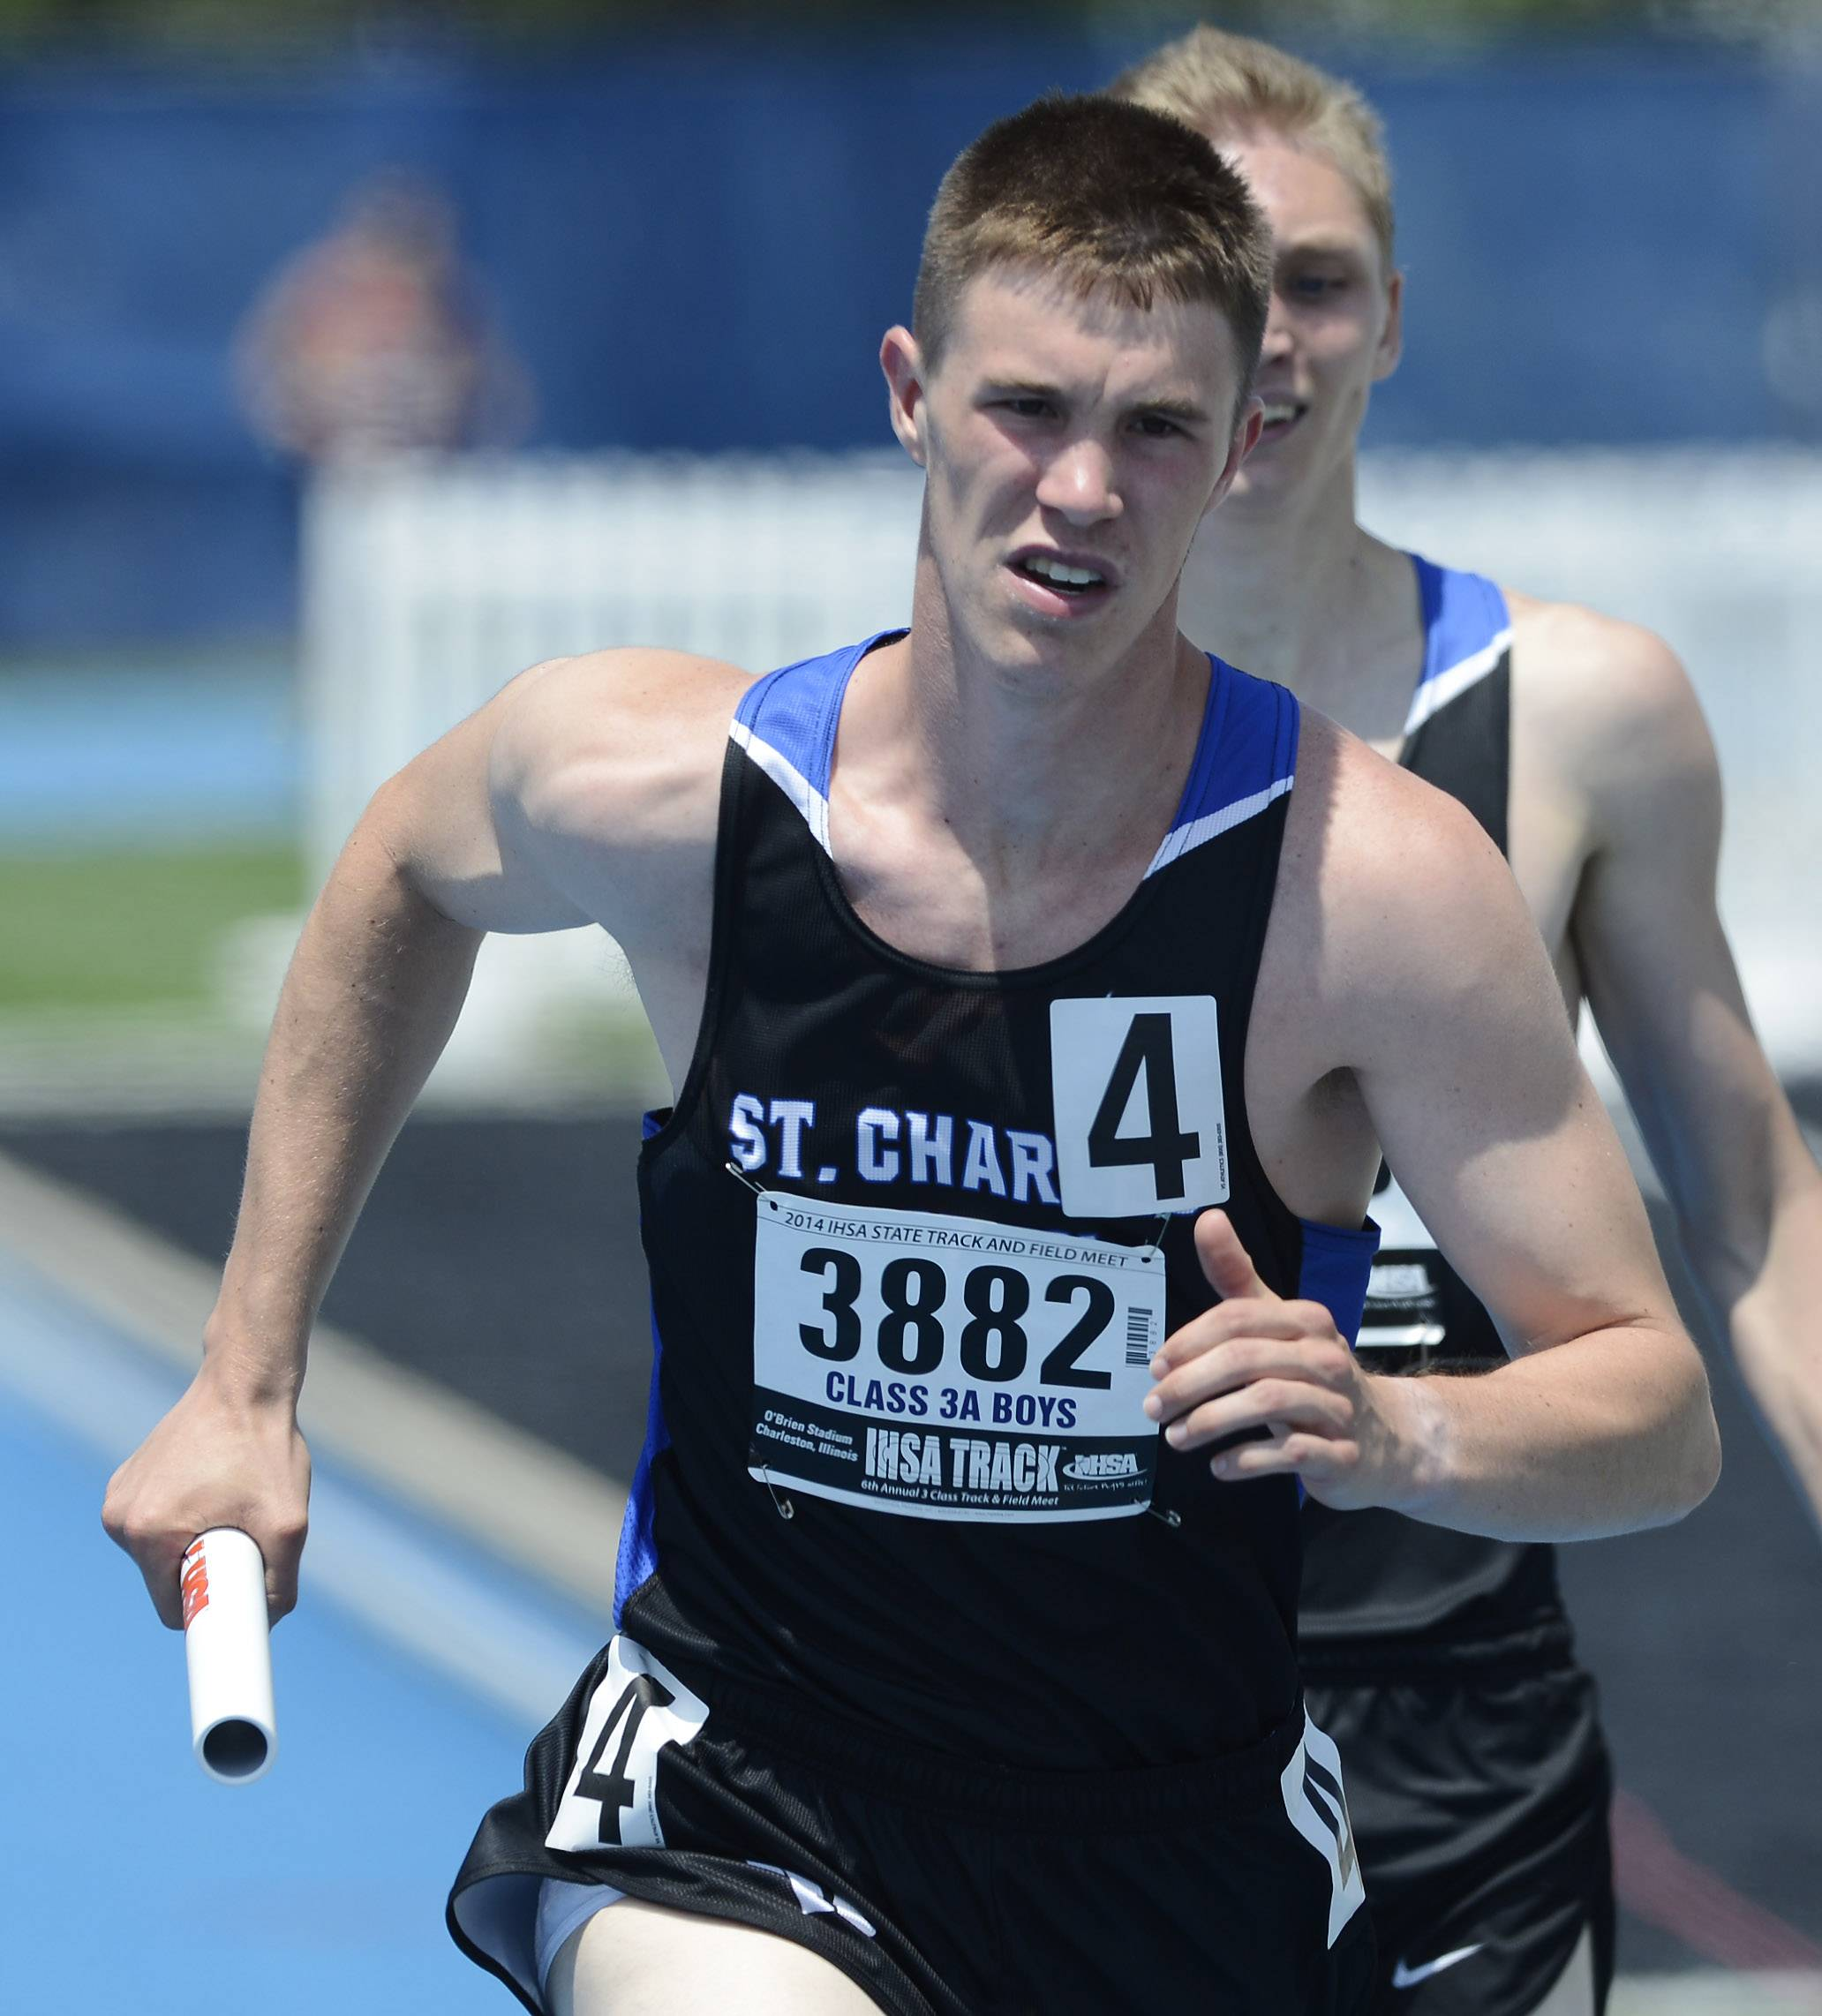 St. Charles North's Nathan Klair carries the baton for his team in the 4x800-meter relay during the boys Class 3A state track and field preliminaries in Charleston Friday.